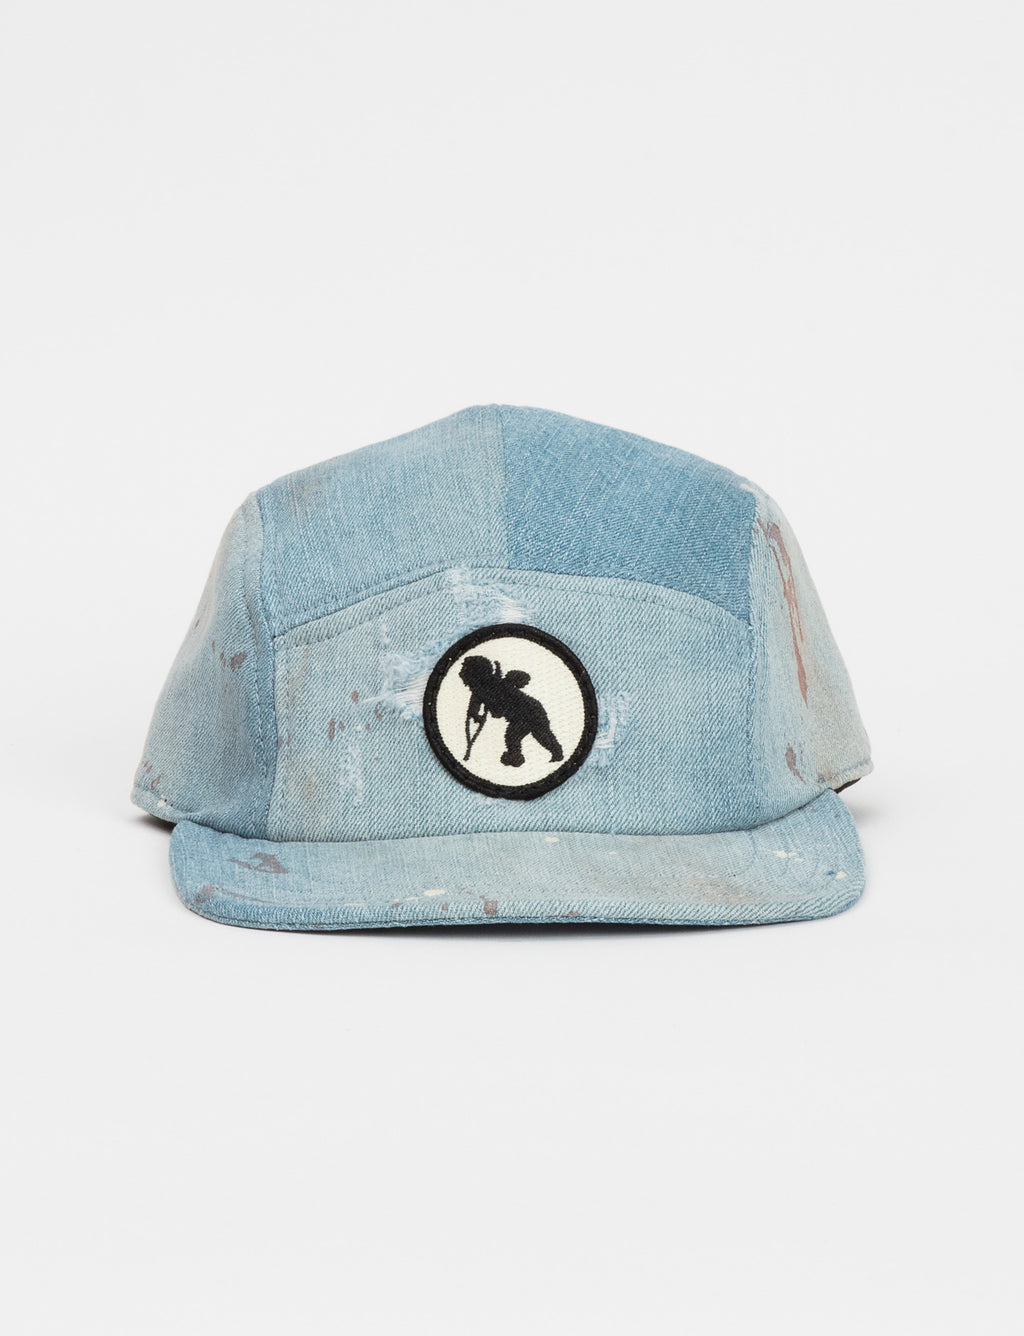 Prps - Bleach Wash Denim Hat - Hat - Prps